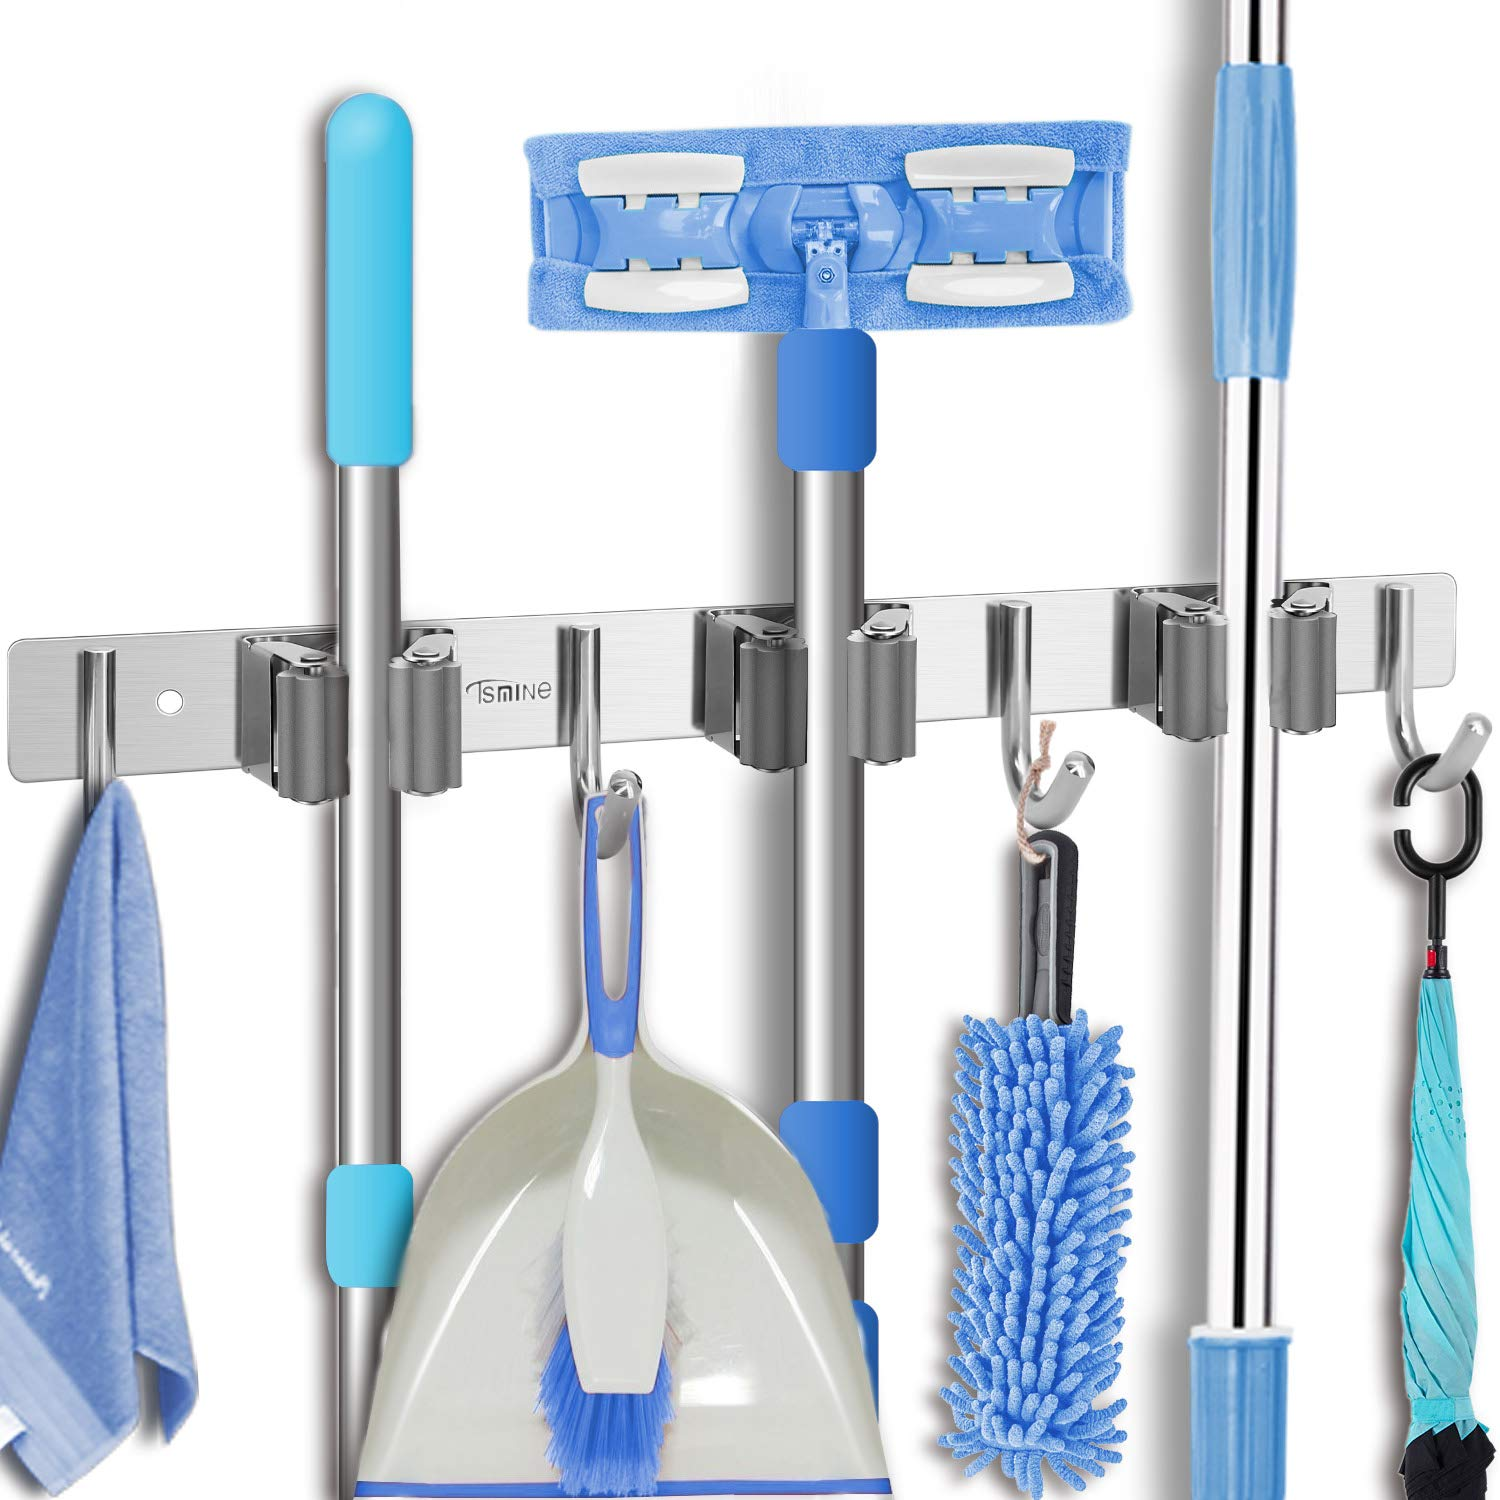 Tsmine Broom Holder Organizers and Storage Stainless Steel Mop Holder Wall Mounted Garden Tool Heavy Duty Rack Hooks for Garage,Home,Kitchen,Bathroom,Closet and Shed (3 Racks 4 Hooks) by Tsmine